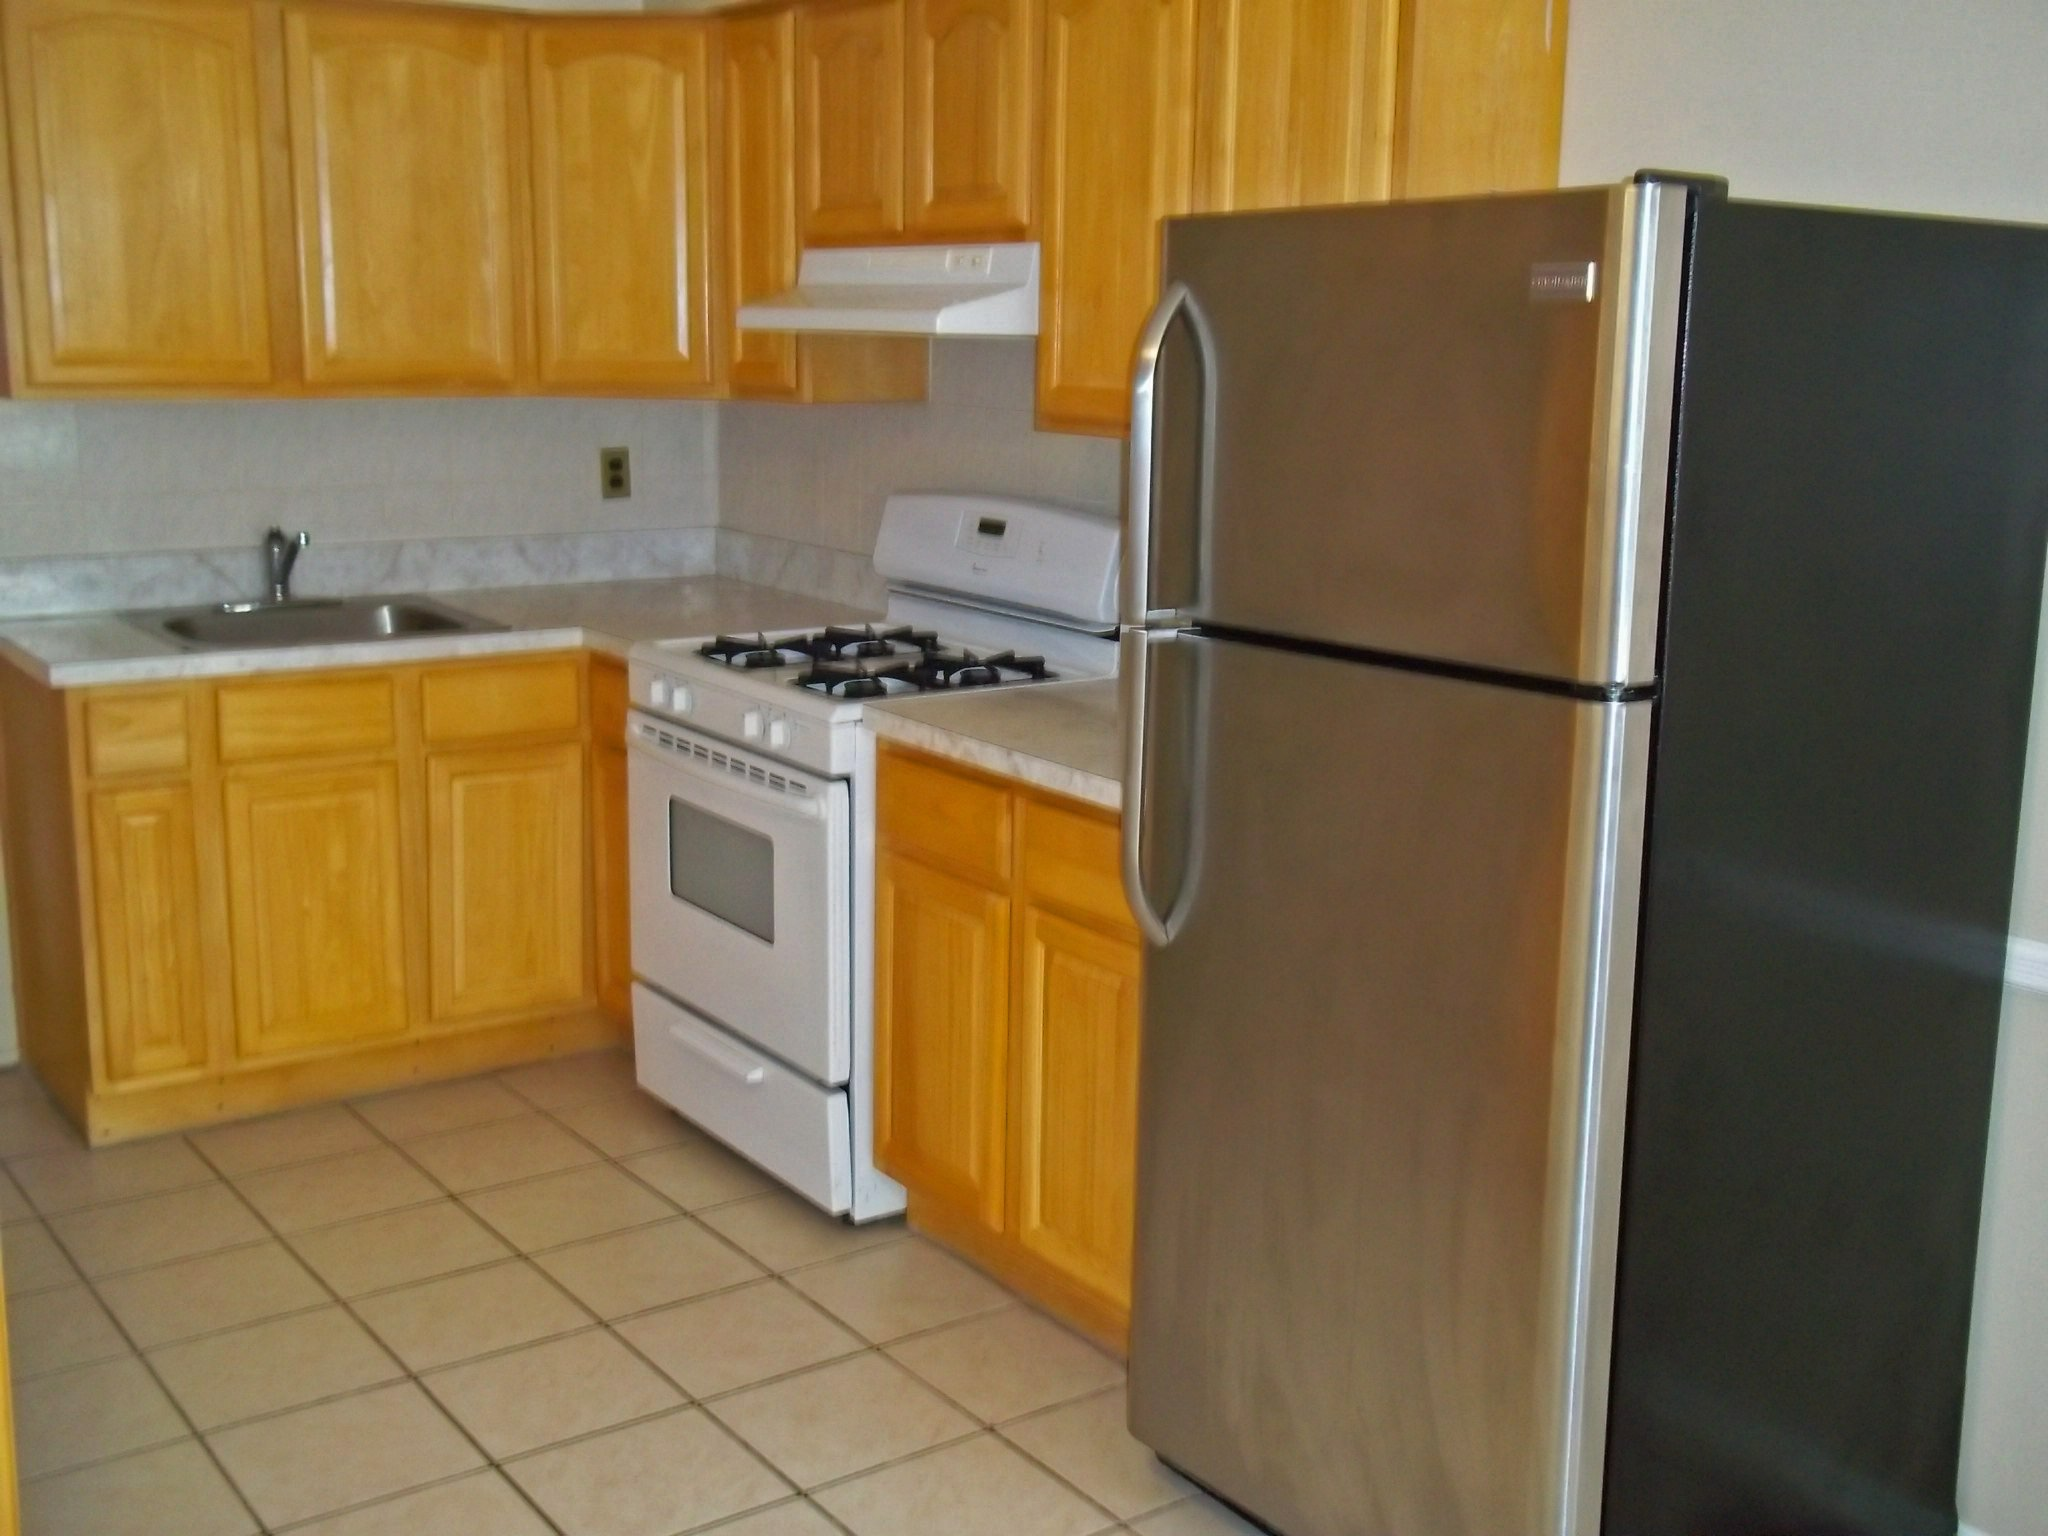 2 Bedroom Apartment For Rent Canarsie Crg3097